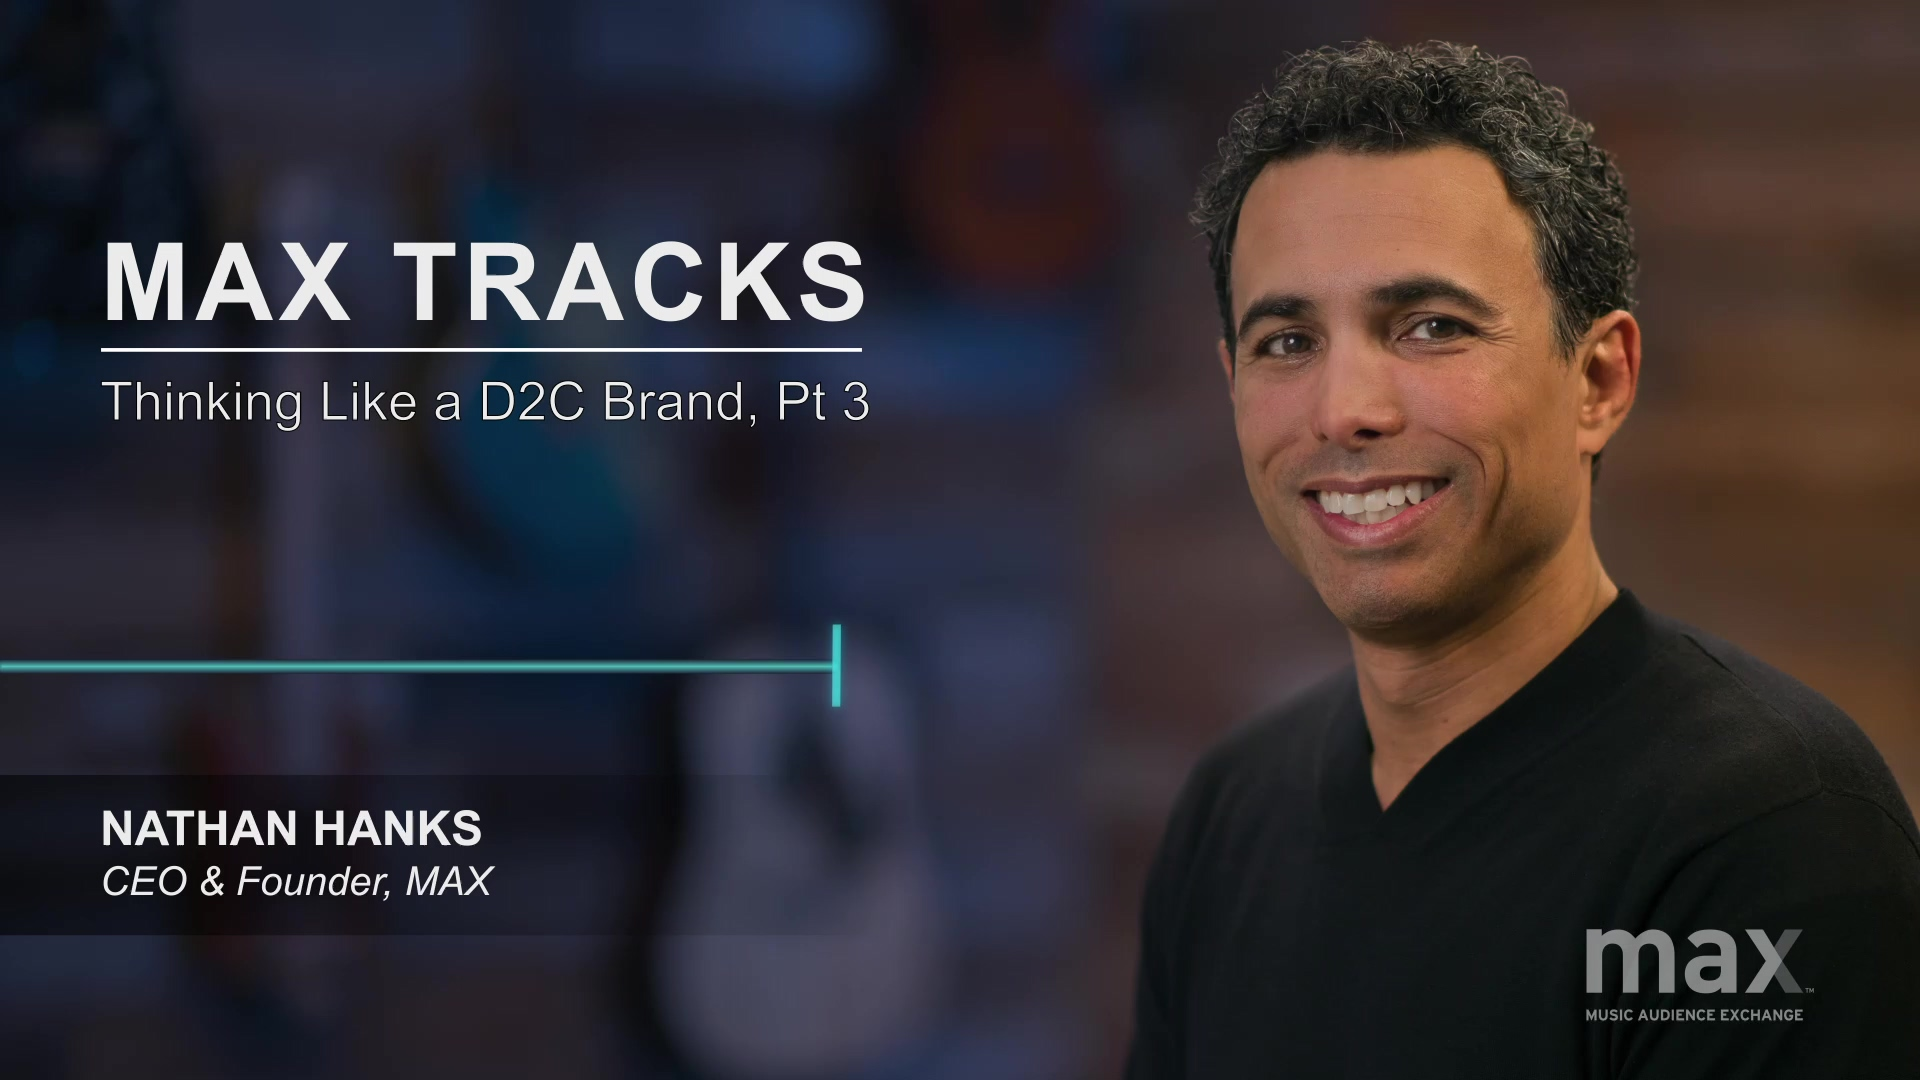 MAX Track - Thinking Like a D2C Brand, Pt 3